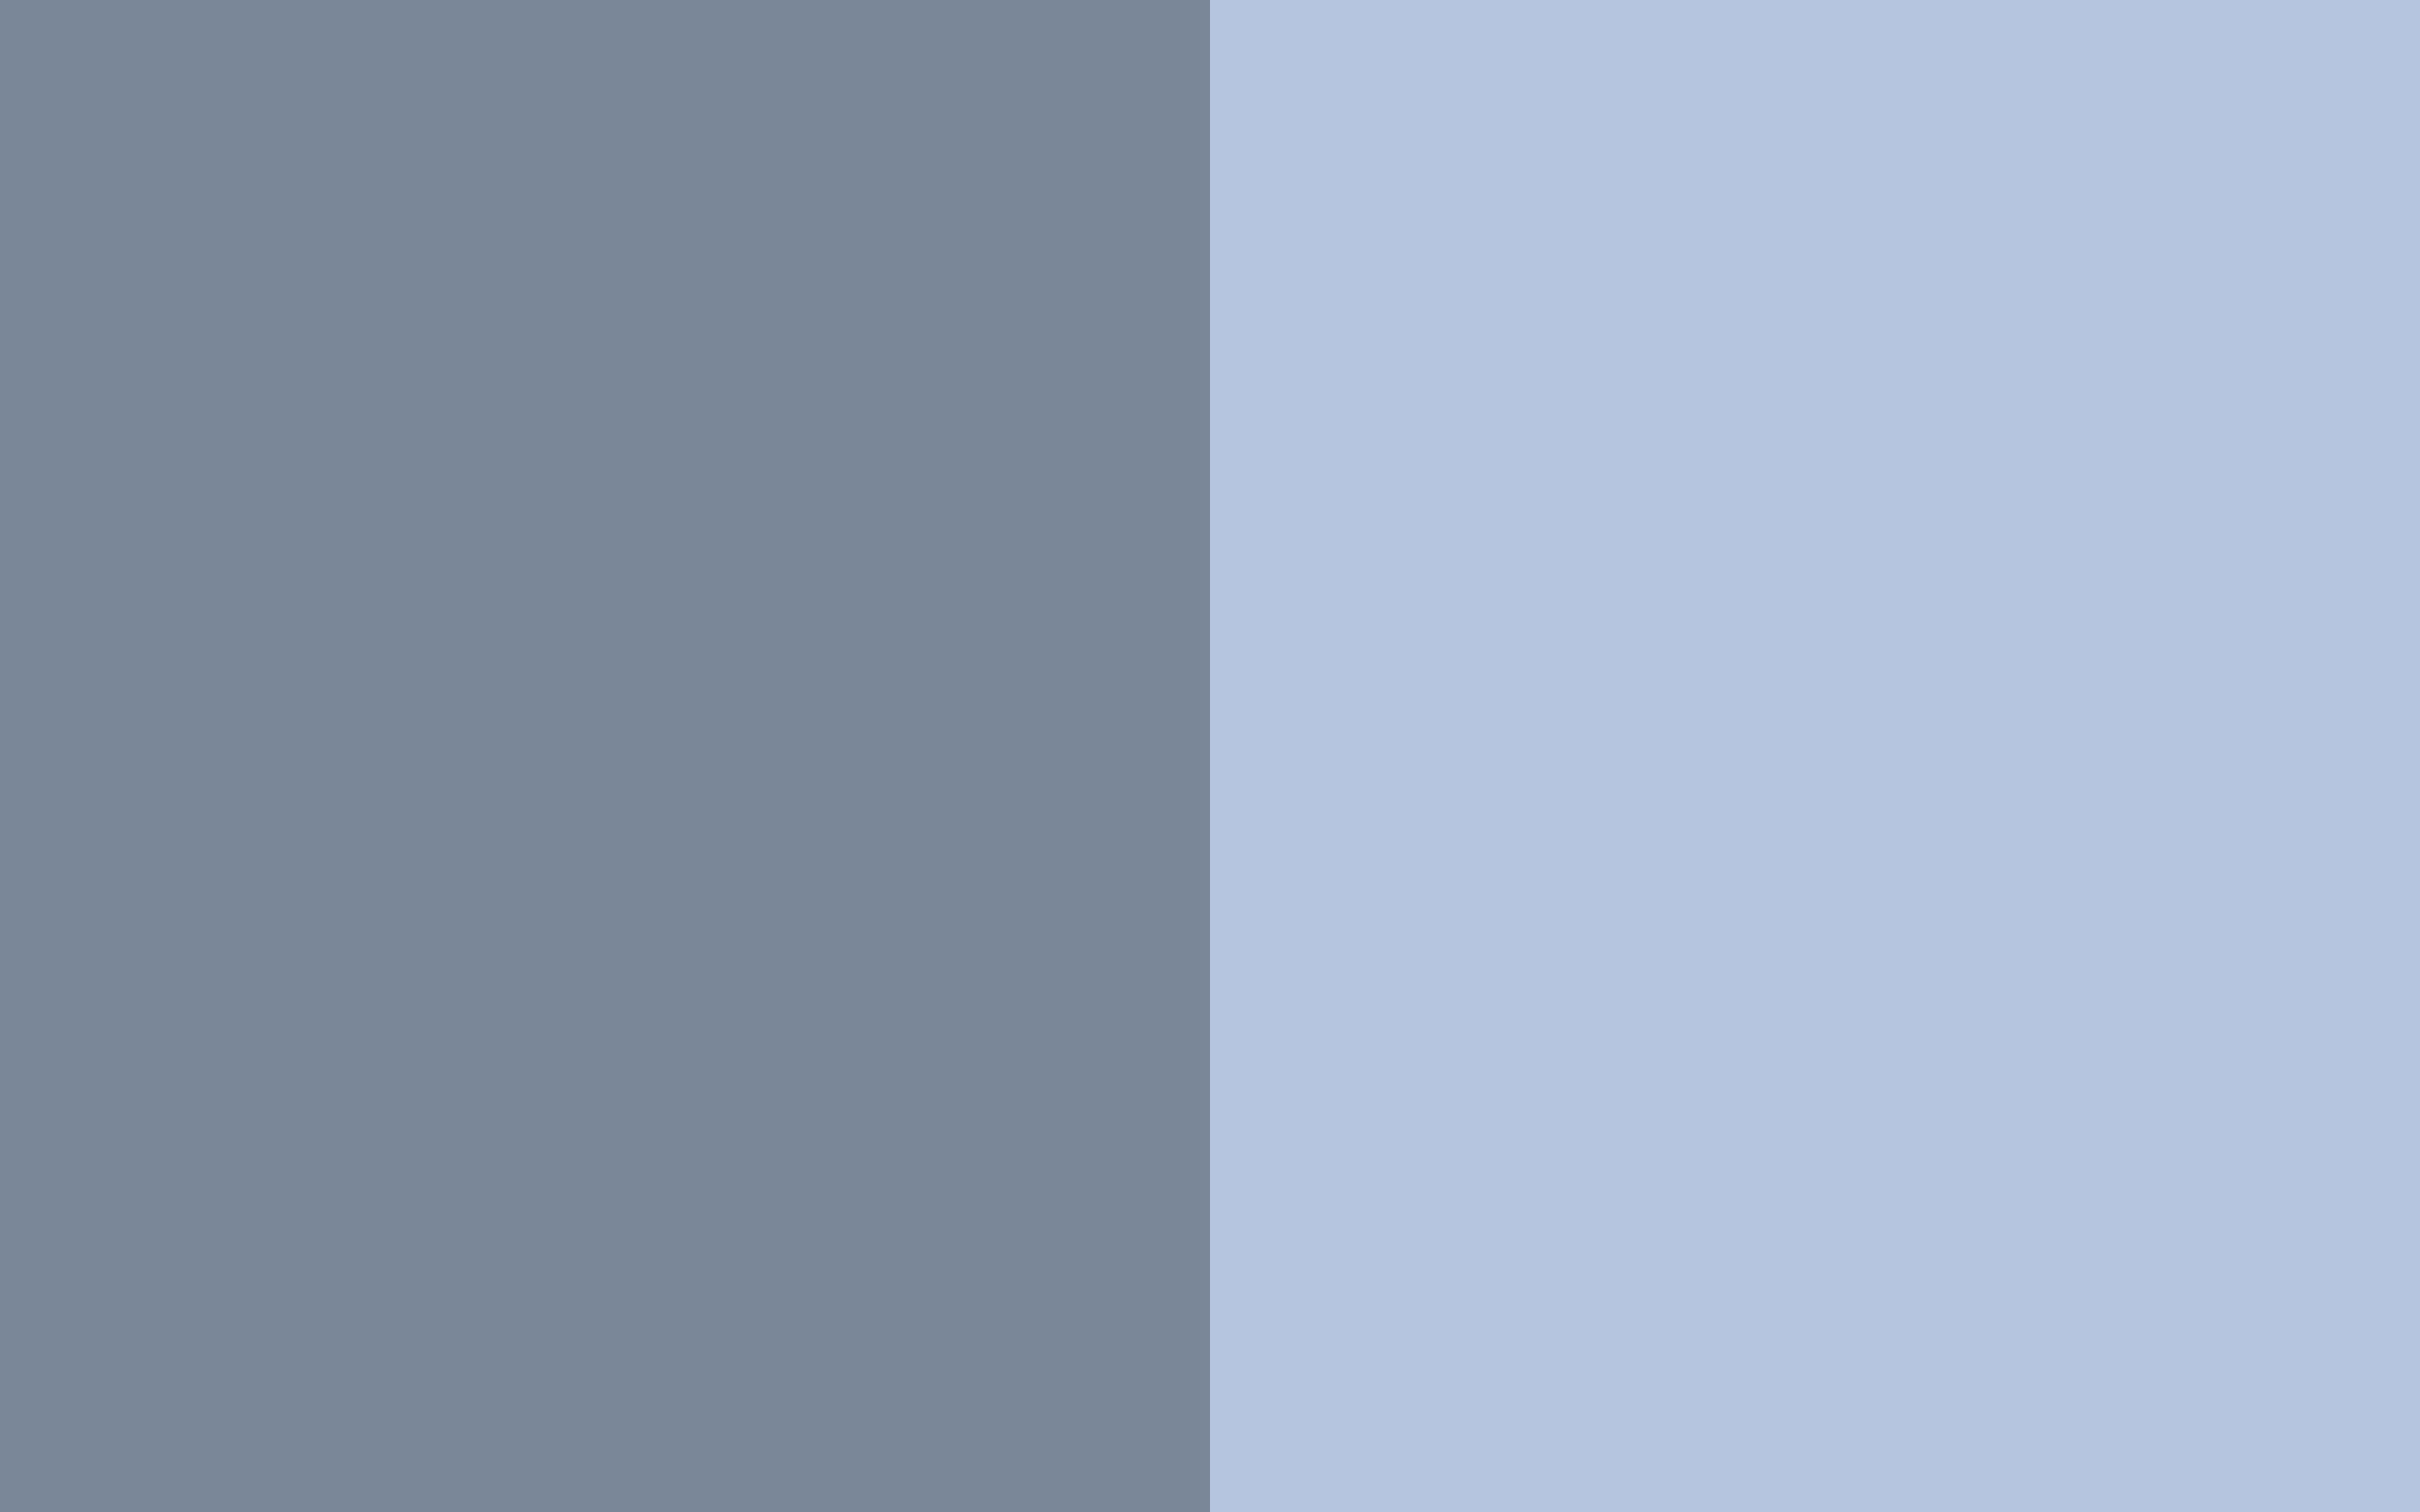 gray and blue wallpaper wallpapersafari